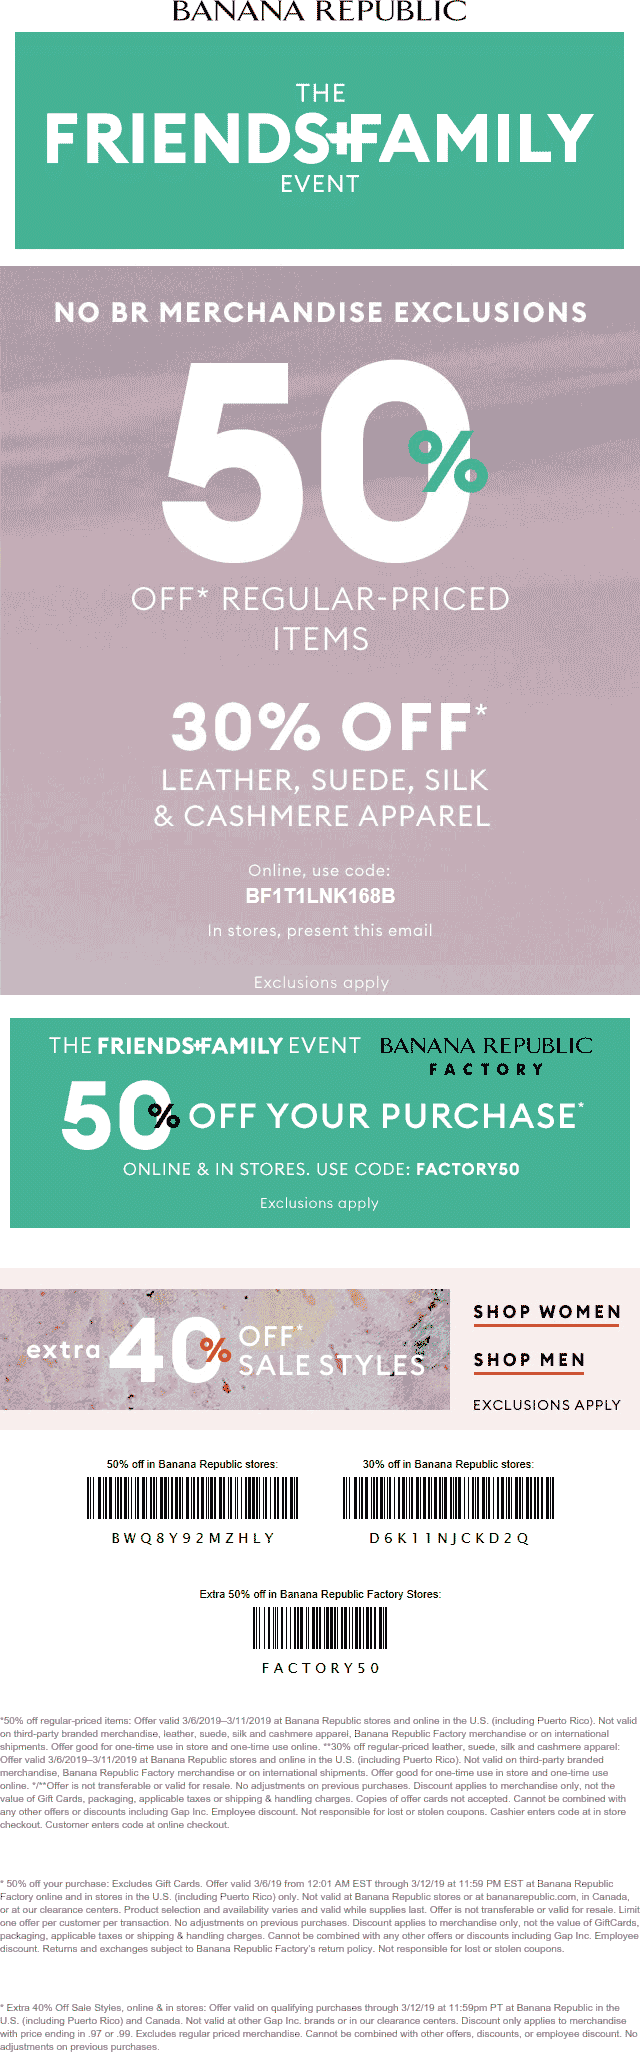 Banana Republic Coupon July 2019 50% off at Banana Republic & factory locations, or online via promo code BF1T1LNK168B